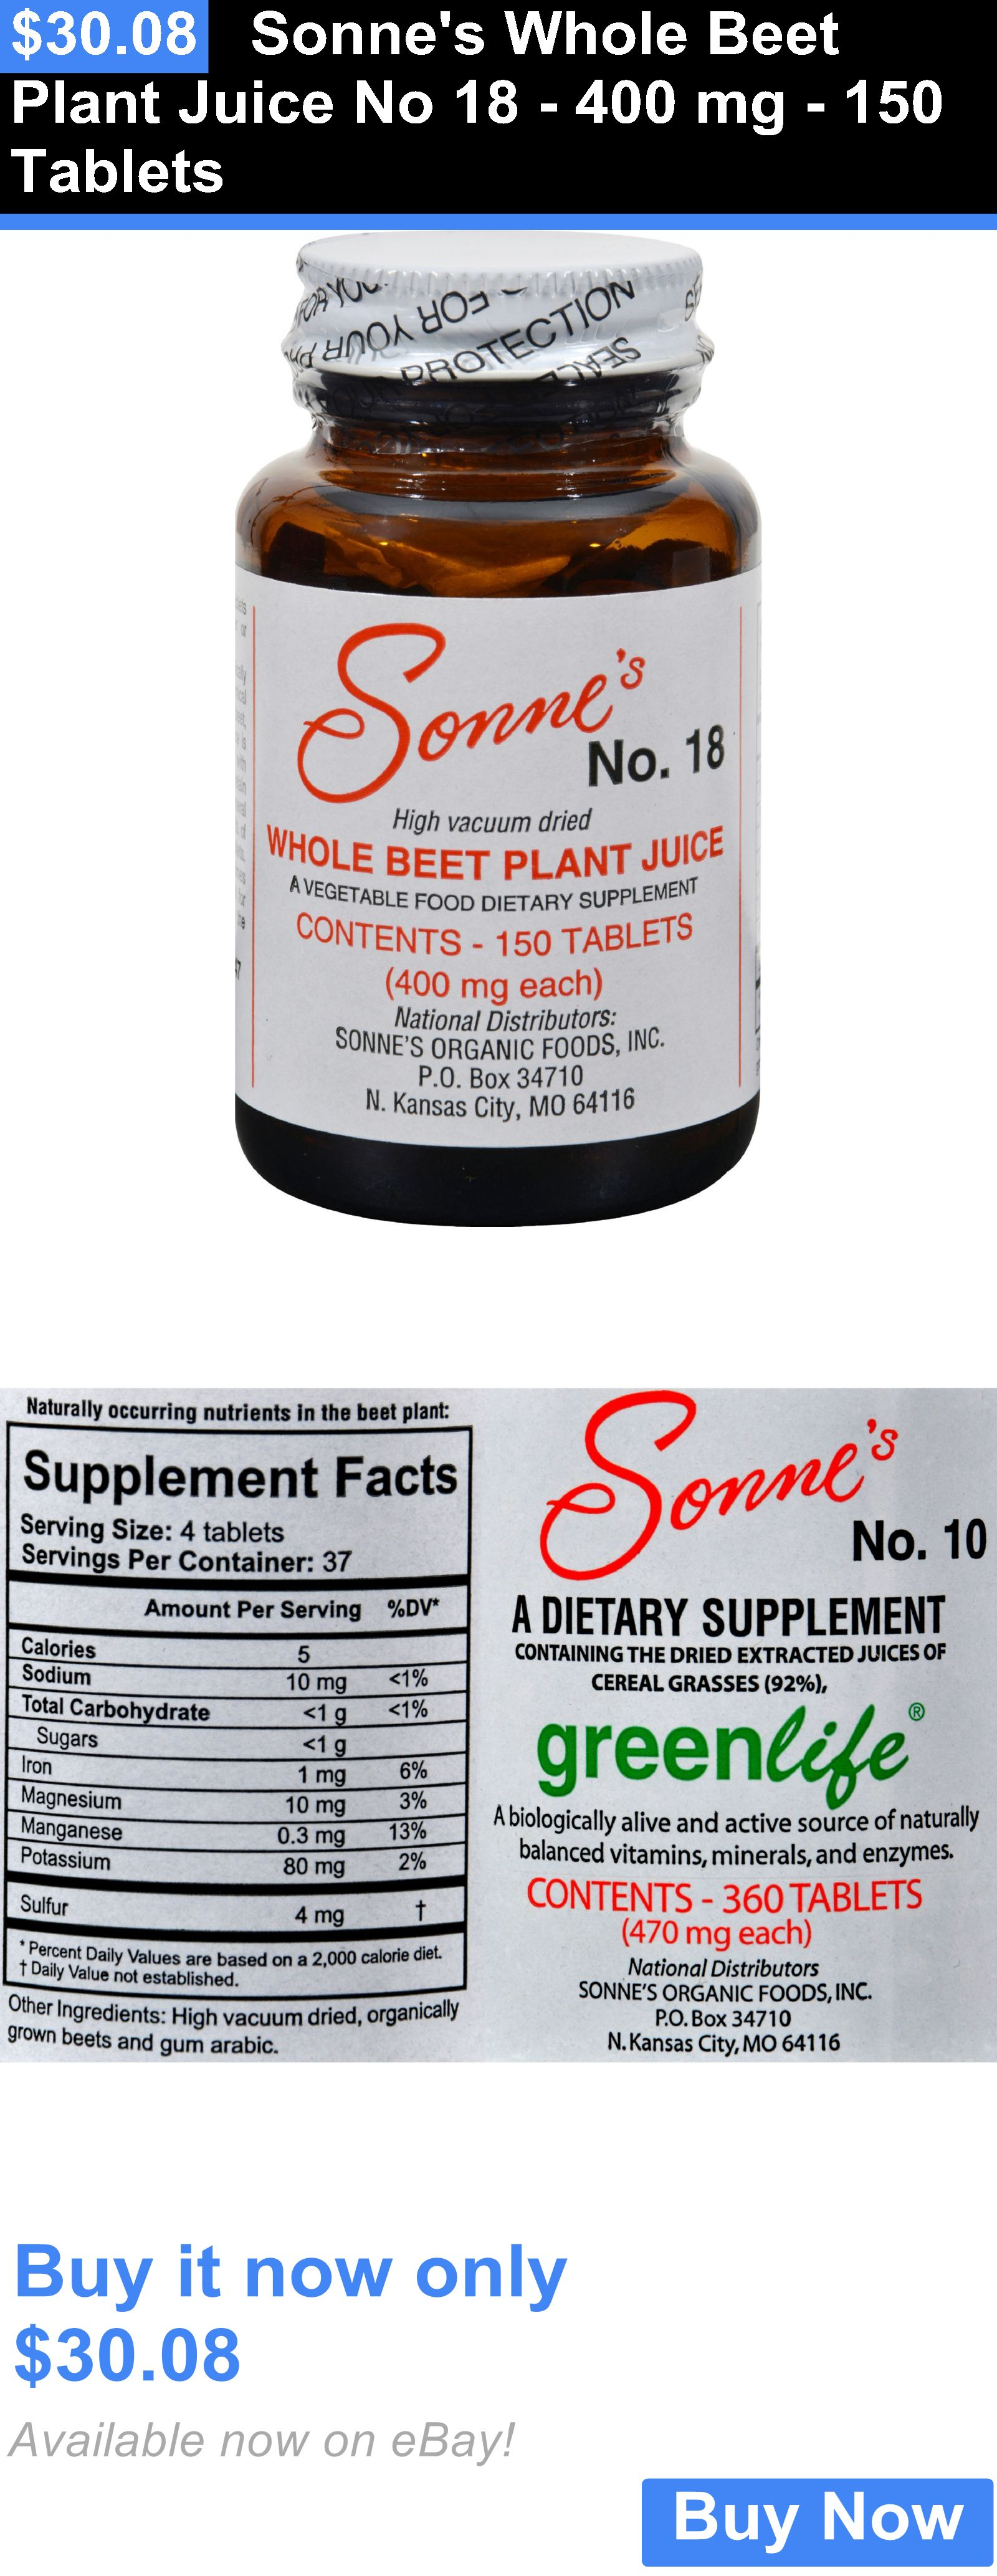 Vitamins and Minerals Sonnes Whole Beet Plant Juice No Mg